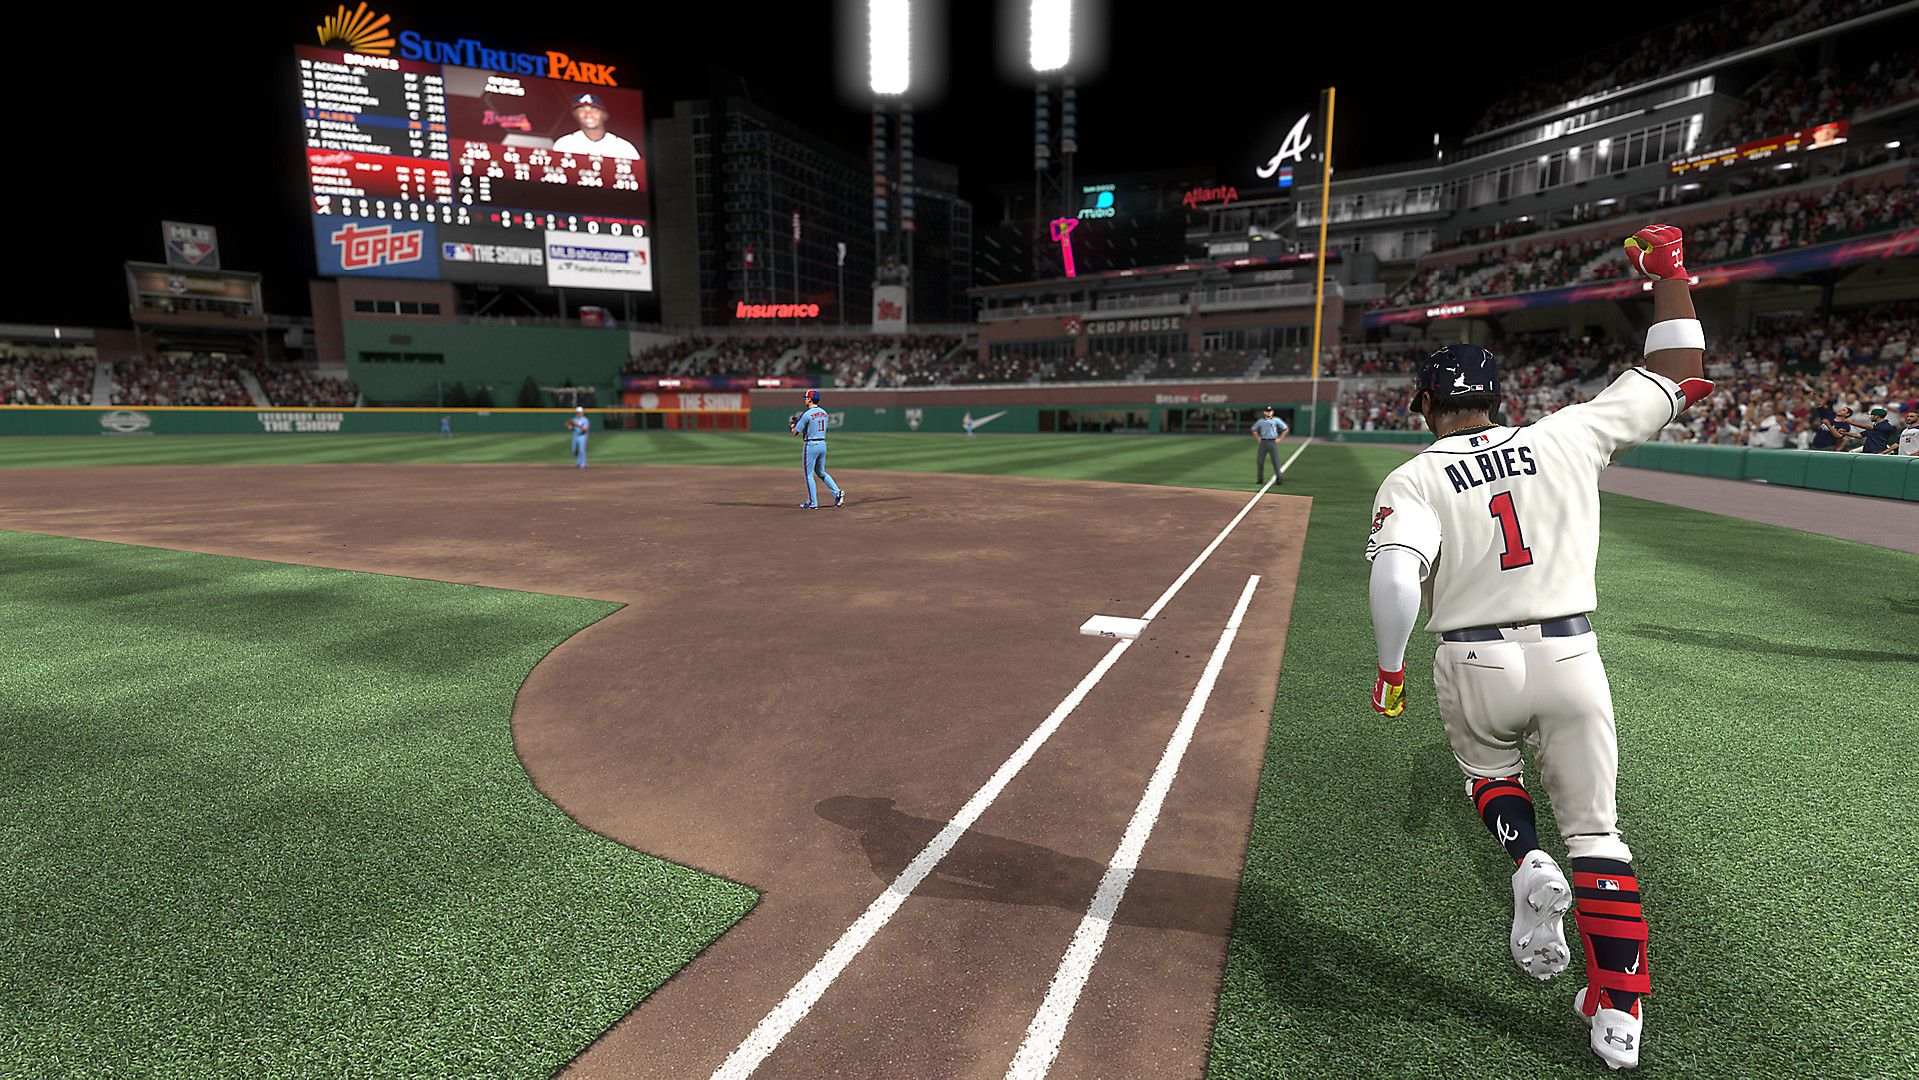 Mlb The Show 19 Sony Playstation 4 711719519058 Walmart Com In 2020 Mlb The Show Mlb Sports Video Game